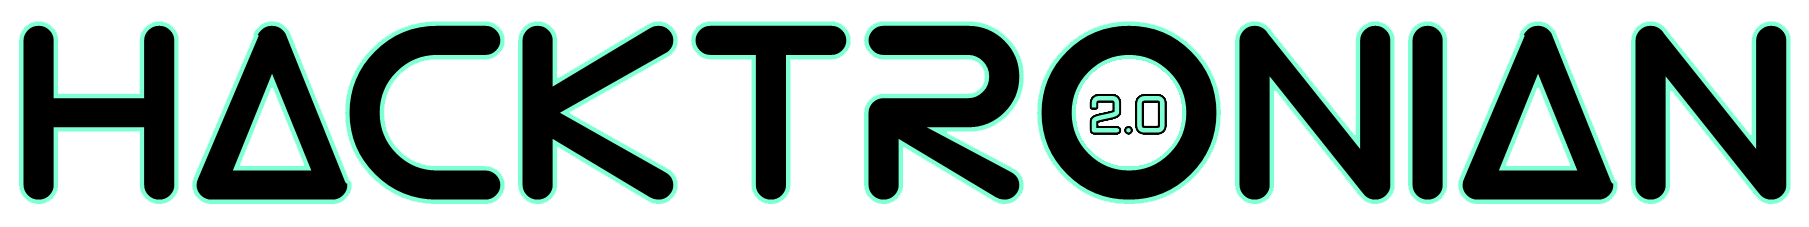 HACKTORIAN – Termux Commands